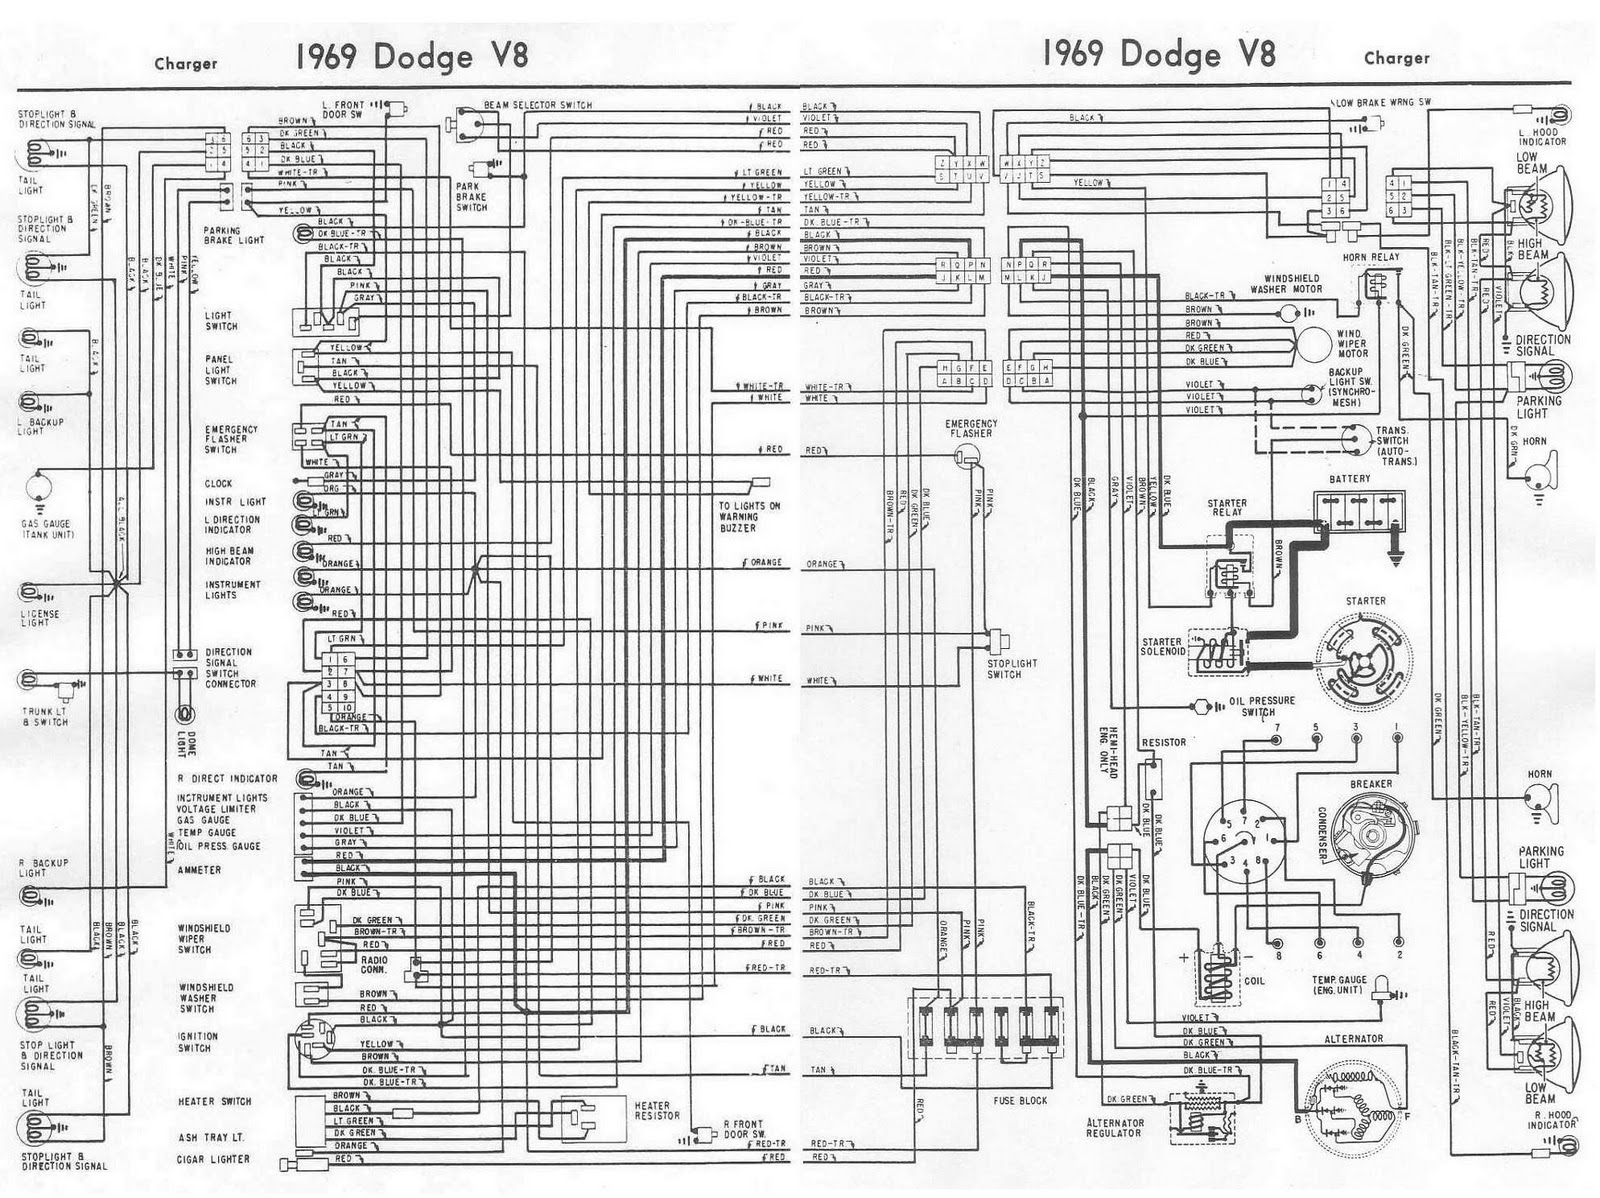 DIAGRAM] 1972 Dodge Charger Wiring Schematic Diagram FULL Version HD  Quality Schematic Diagram - SUPREMEWIRING.NUDISTIPERCASO.ITsupremewiring.nudistipercaso.it